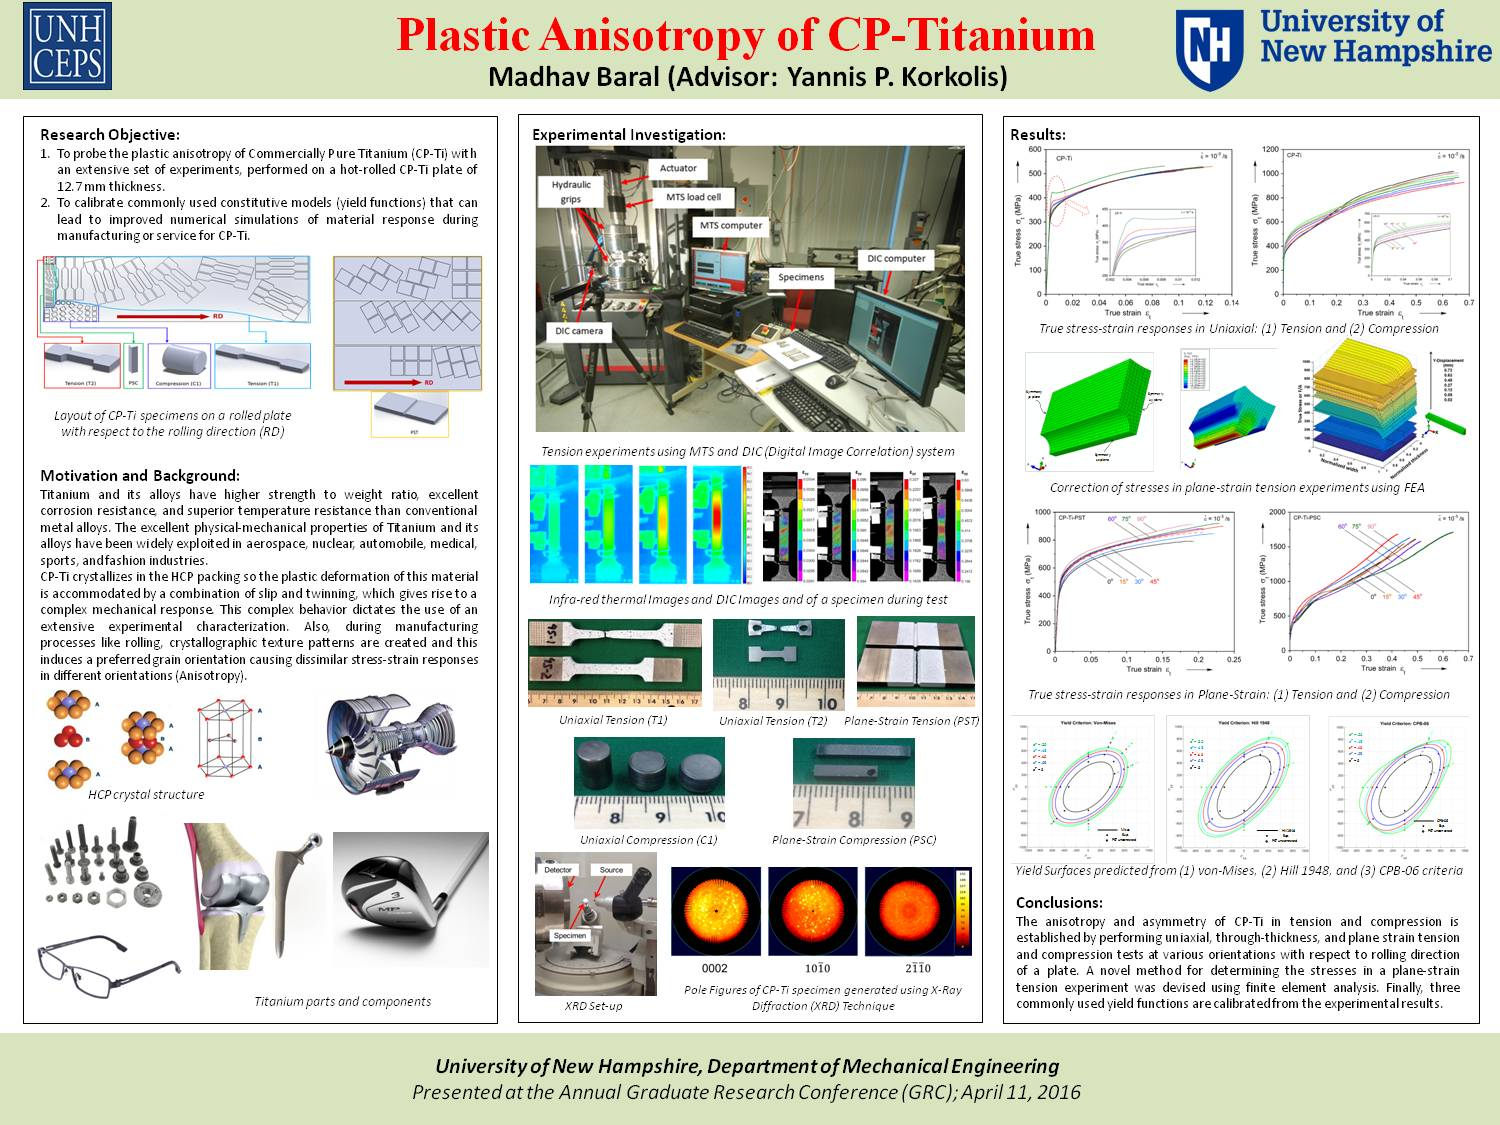 Plastic Anisotropy Of Cp-Titanium by madhavbaral1988